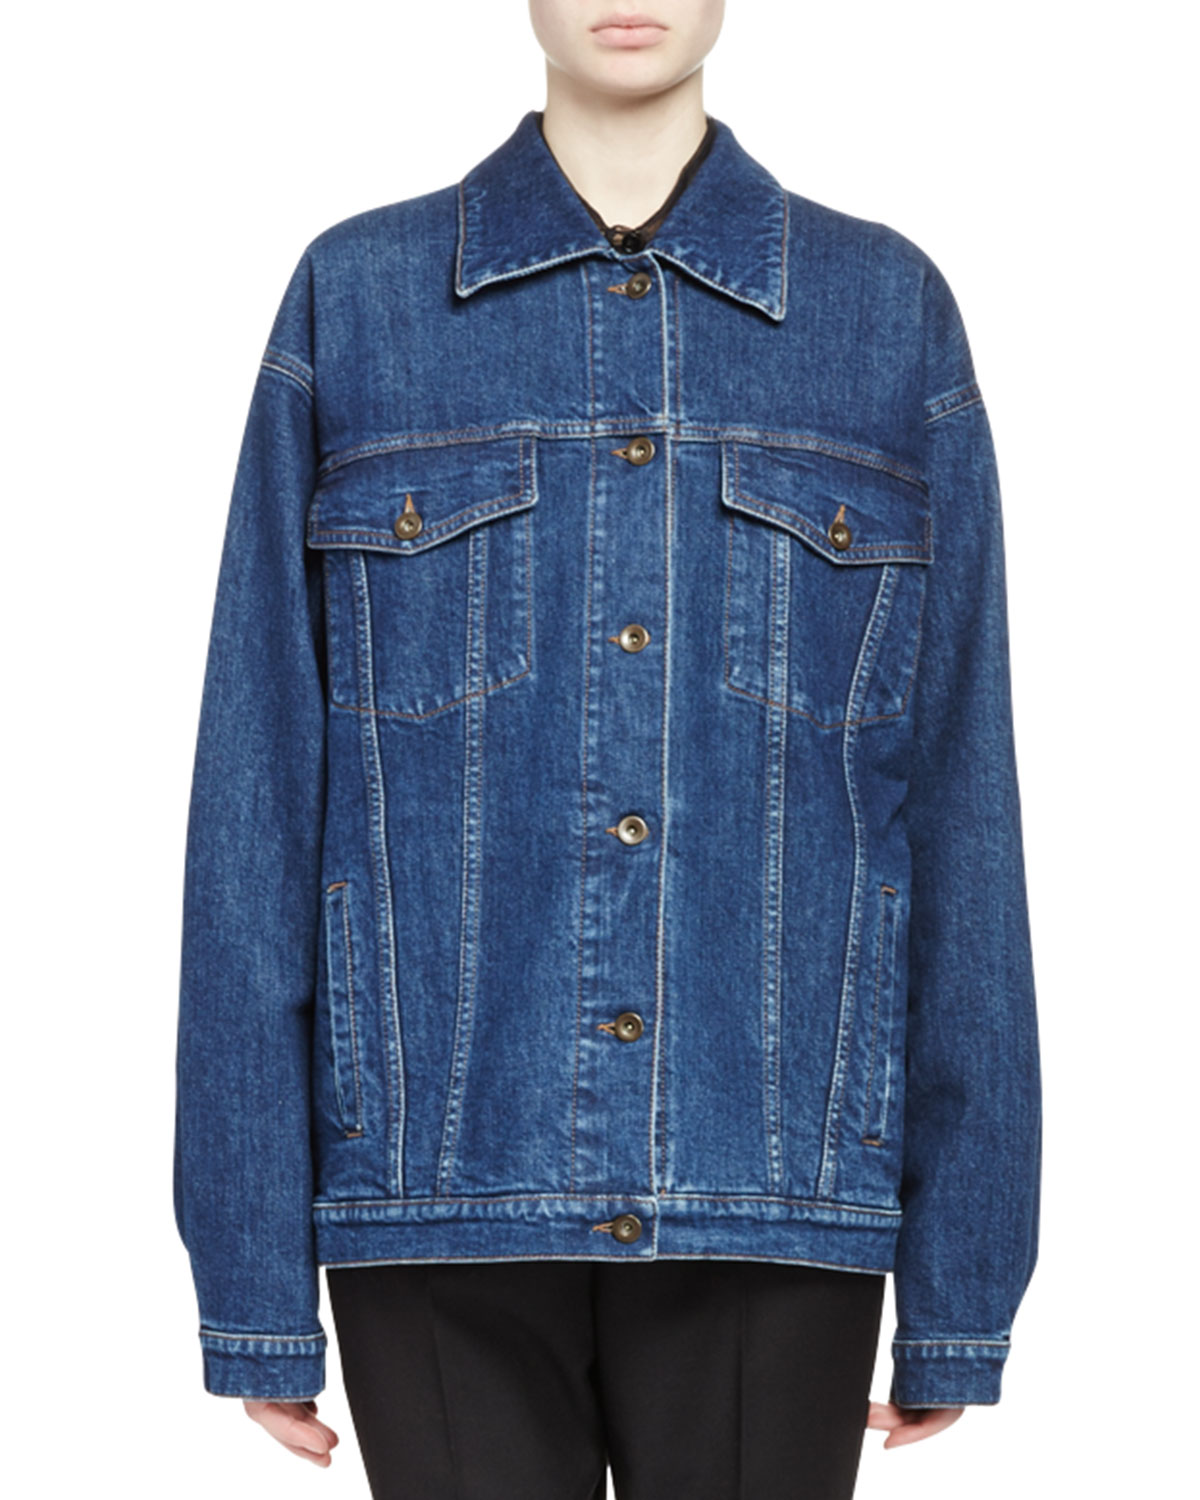 Swan-Embroidered Jean Jacket, Blue Notte